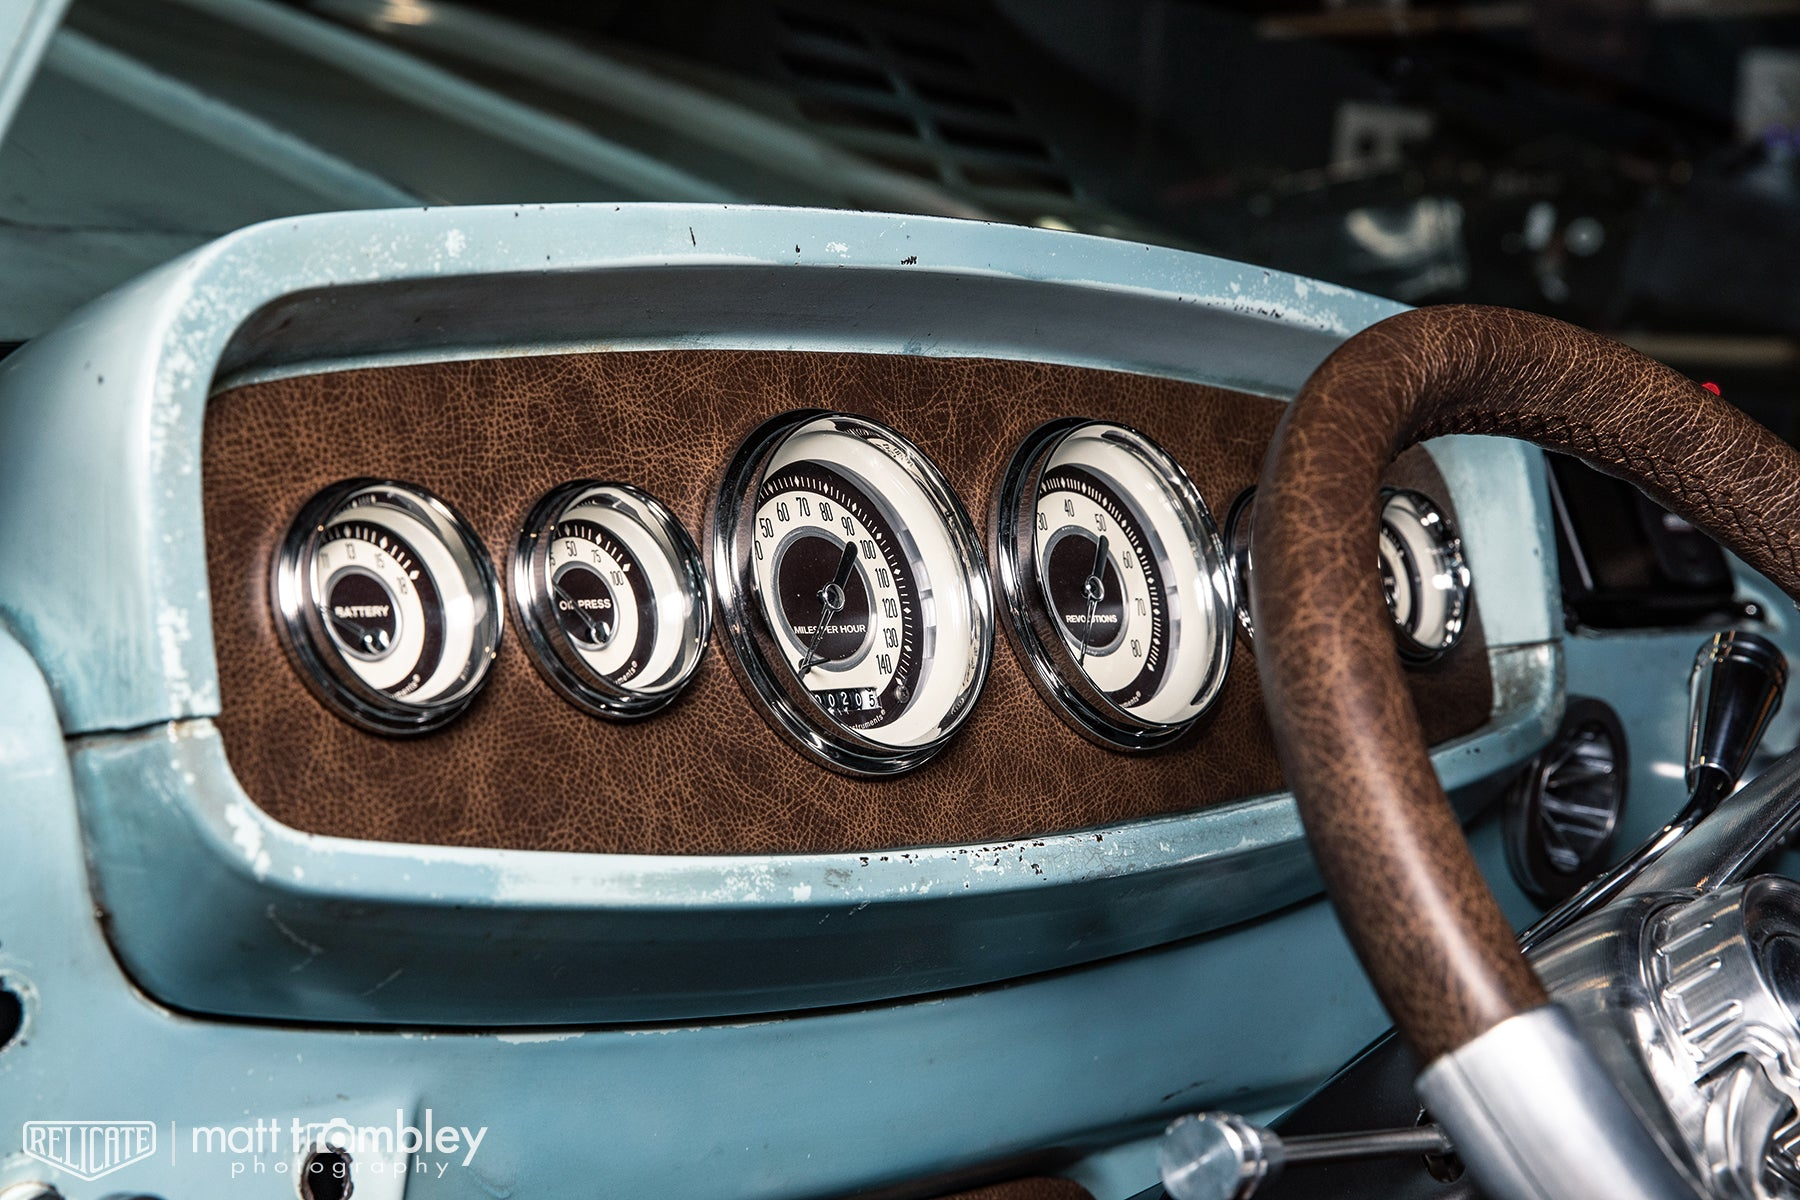 Classic Instruments gauges dash Relicate Distressed Vintage Oak Leather interior 1964 Dodge D100 pickup truck sema 2019 restomod air booth